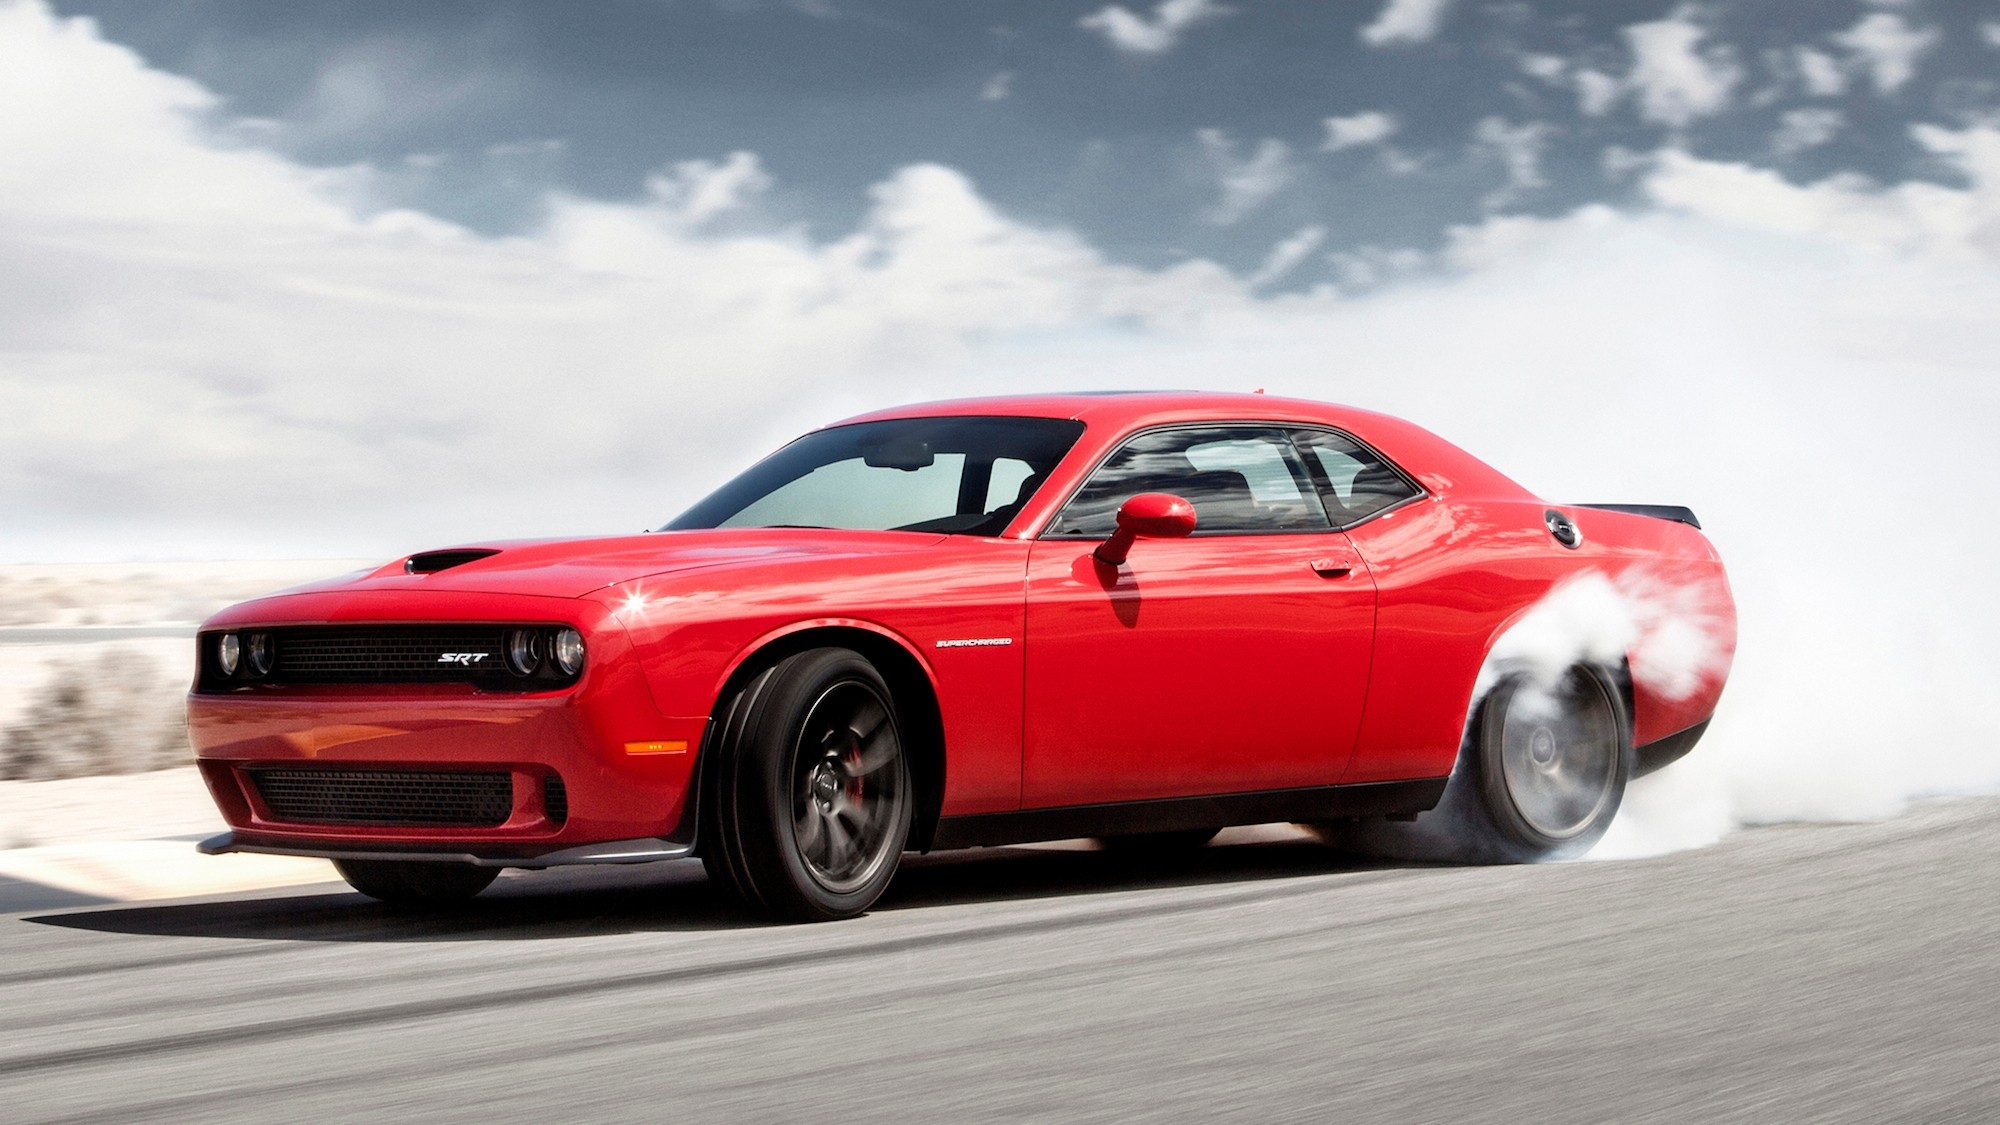 What is New for the Dodge Challenger in 2022?